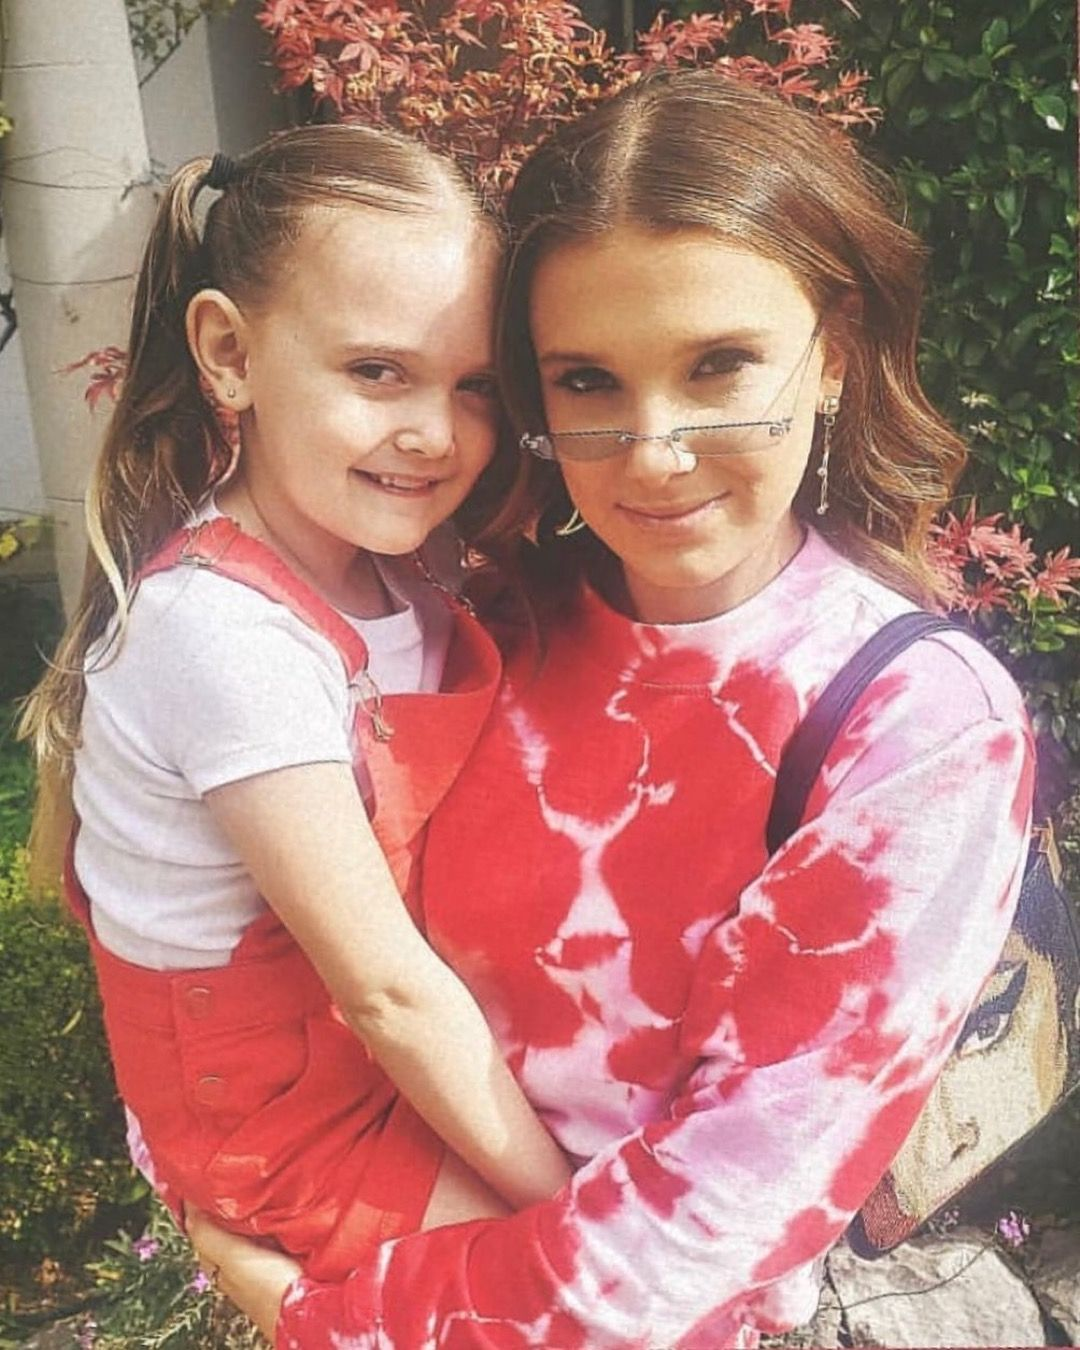 Pin By Evy Meuffels On Millie Bobby Brown Bobby Brown Millie Bobby Brown Bobby Brown Stranger Things